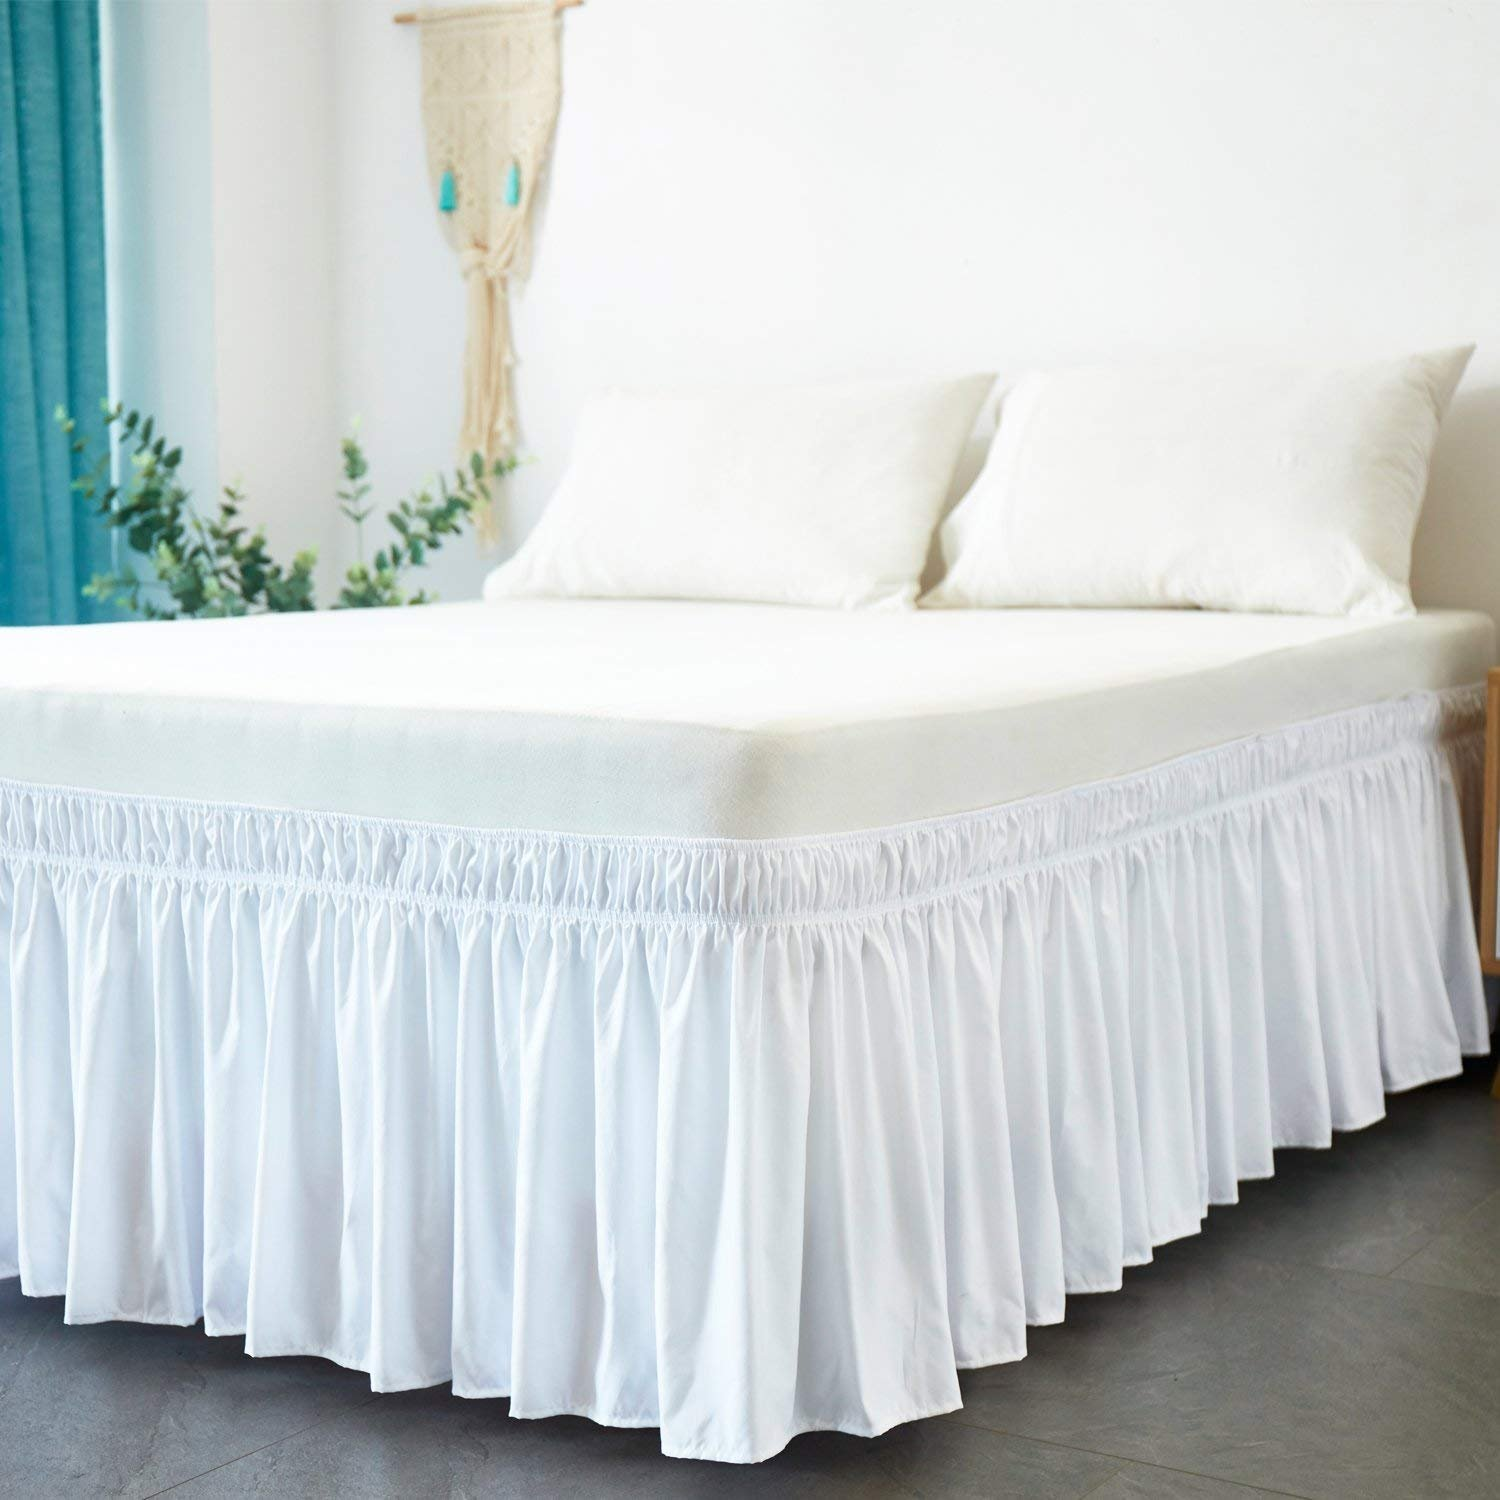 Cozylife Three Fabric Sides Wrap Around Elastic Solid Bed Skirt, Easy On/Easy Off Dust Ruffled Bed Skirts 14 inch Tailored Drop (White,Full/Queen)